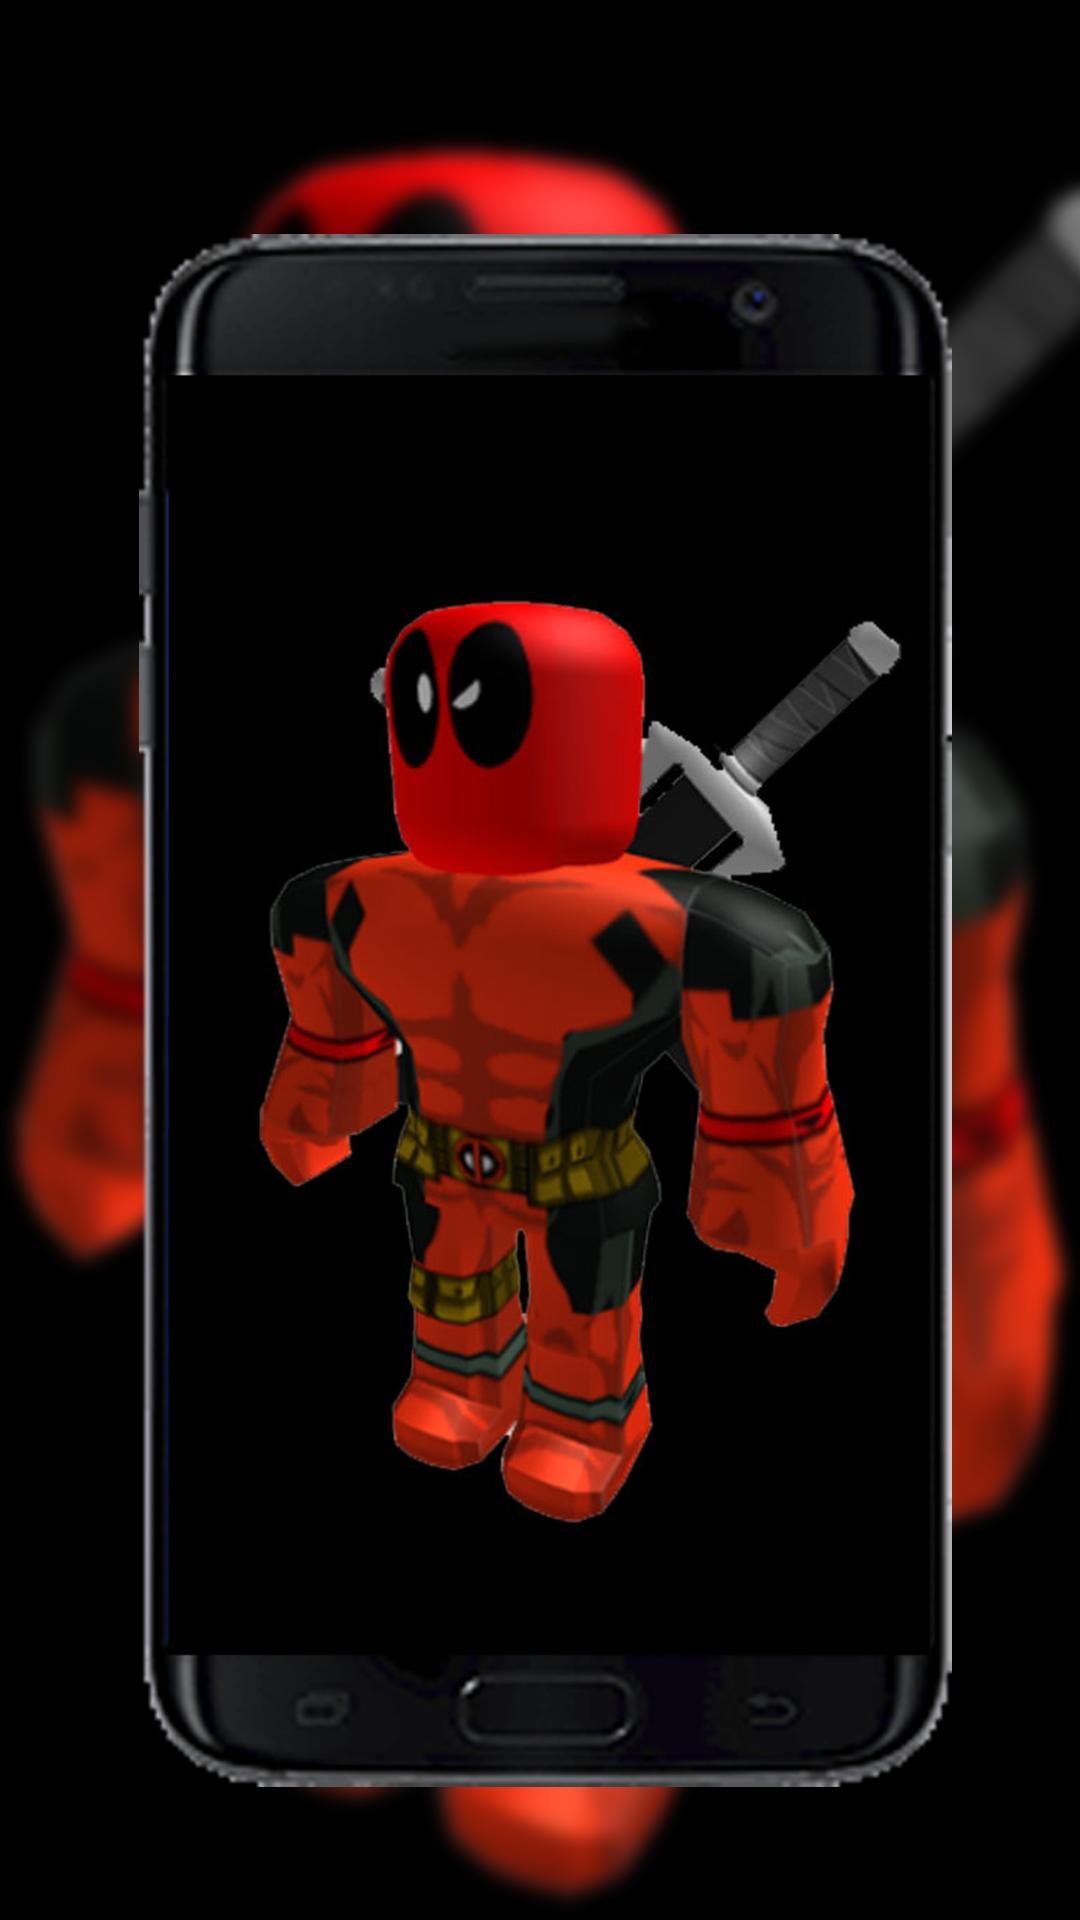 Cool Roblox Wallpaper 4k 2019 For Android Apk Download